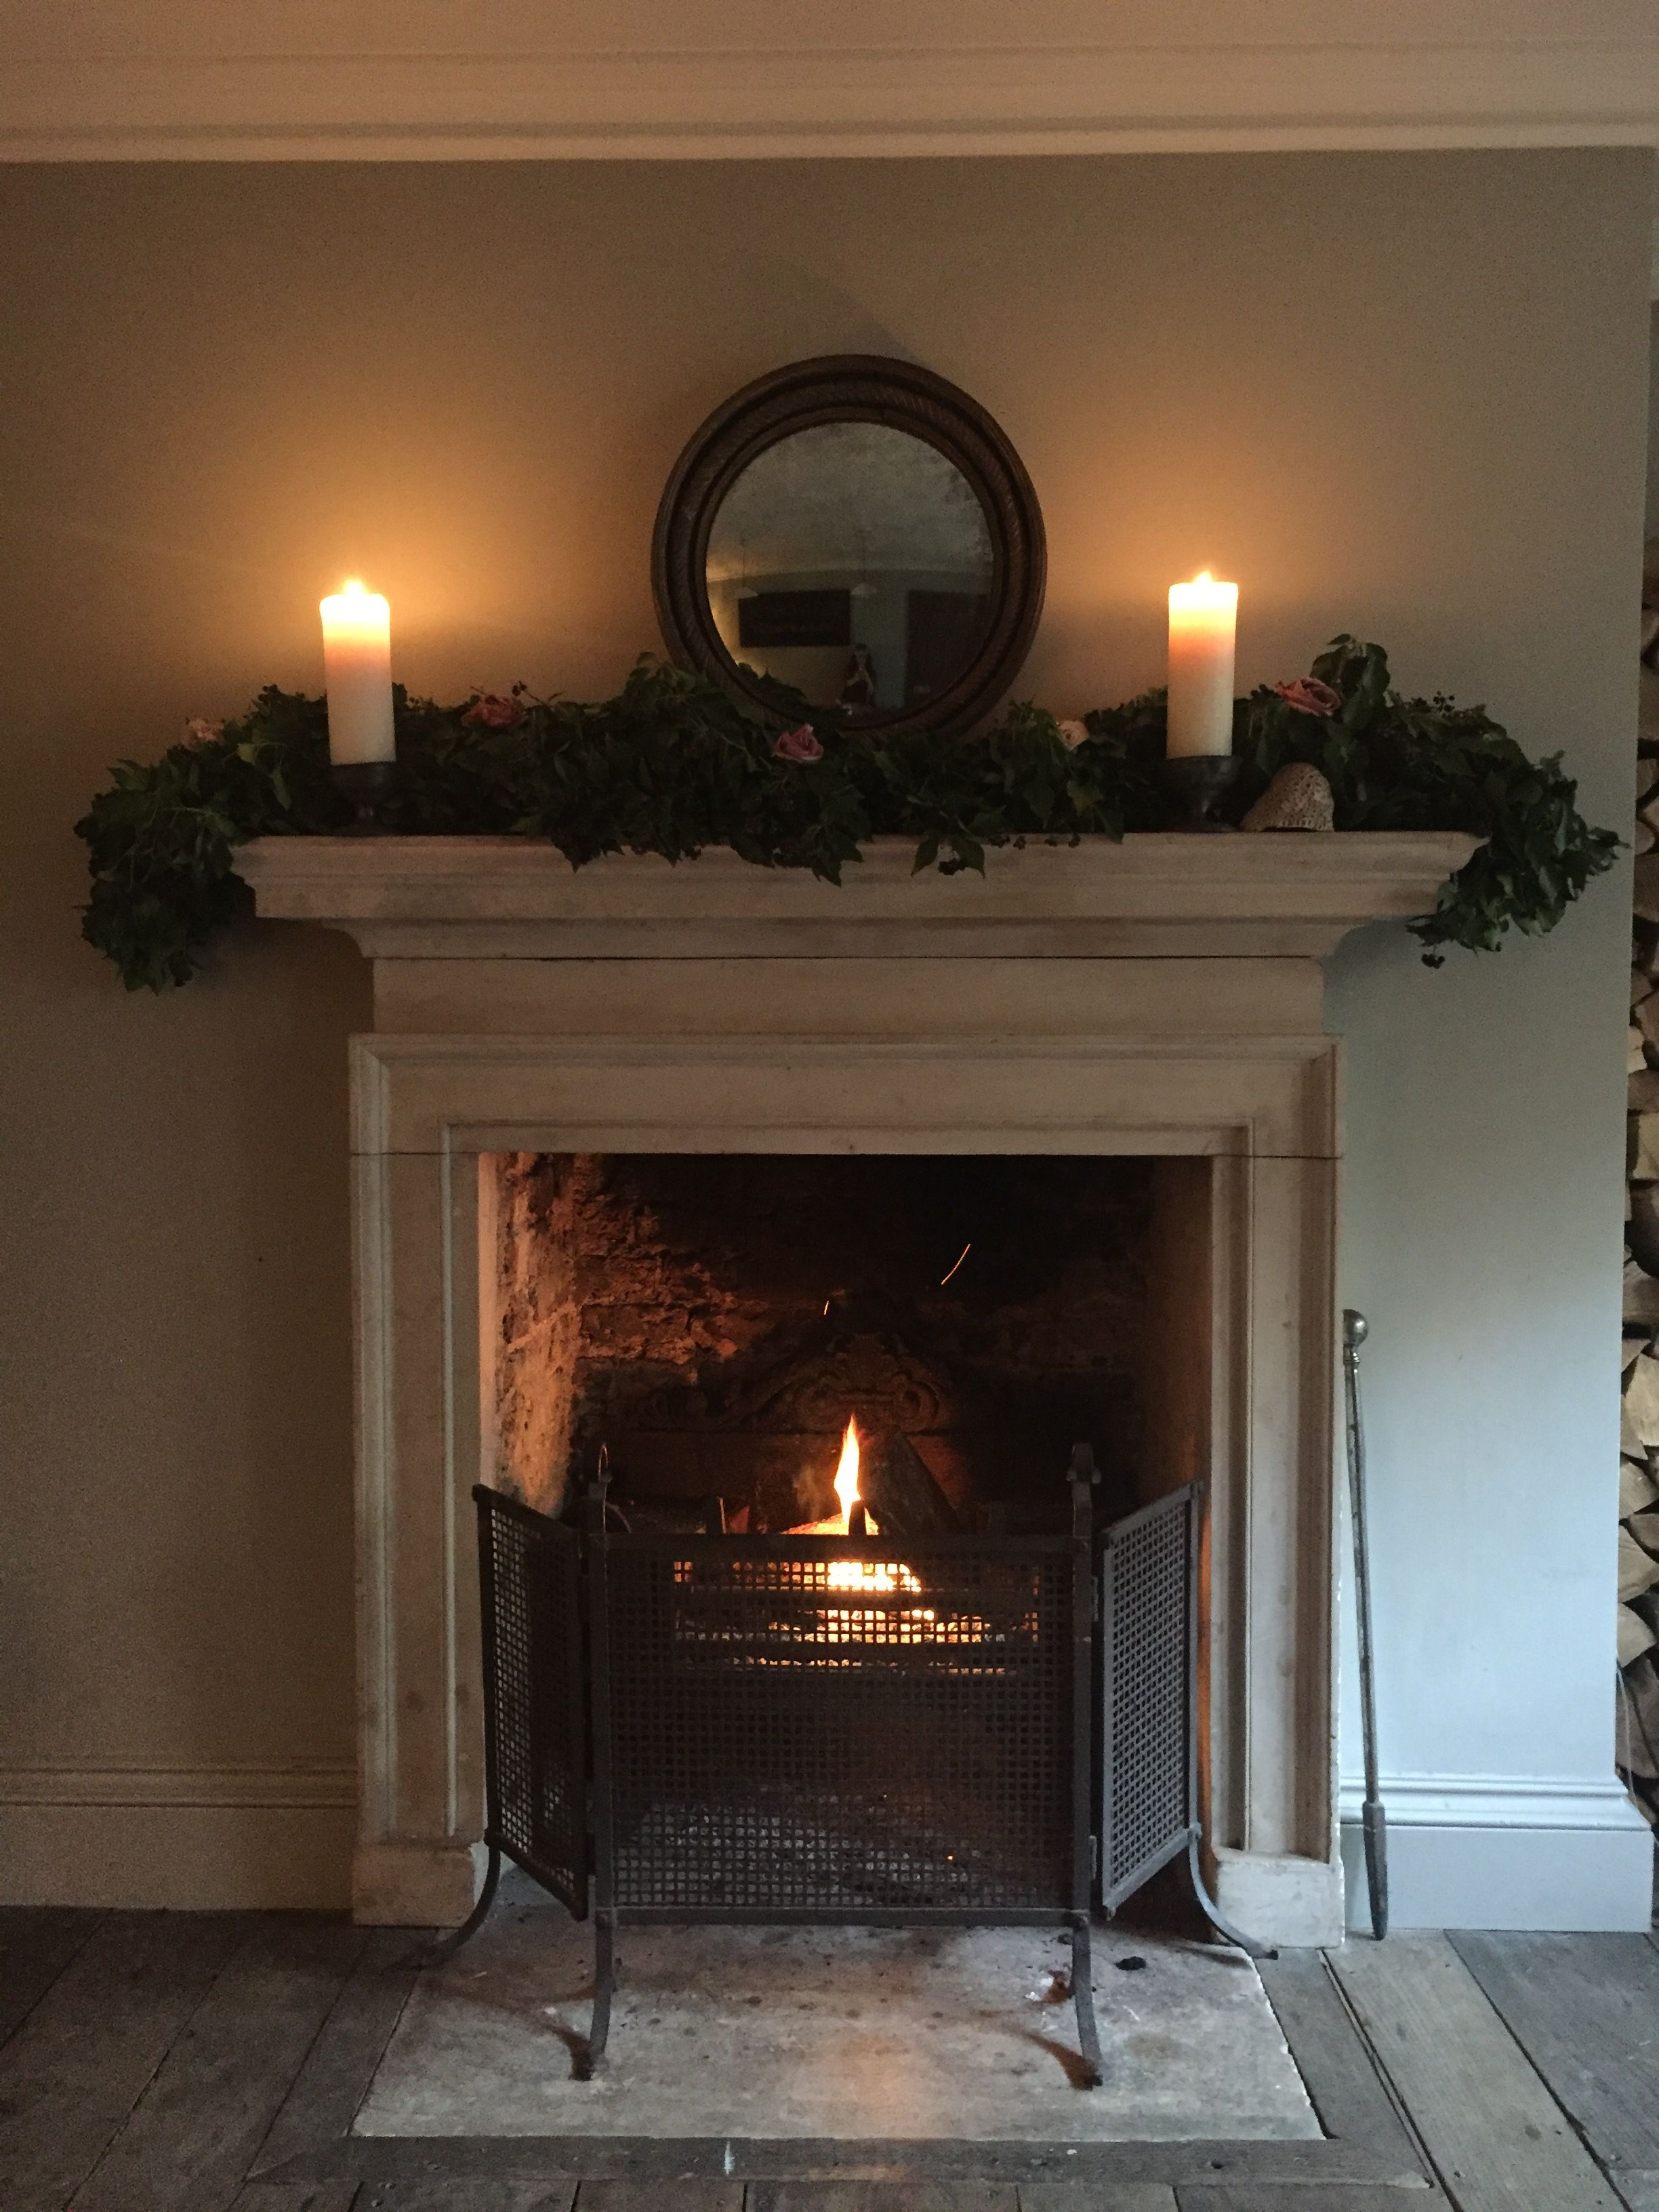 Pin By Sharon M On Fire Place Christmas Fireplace Mantels